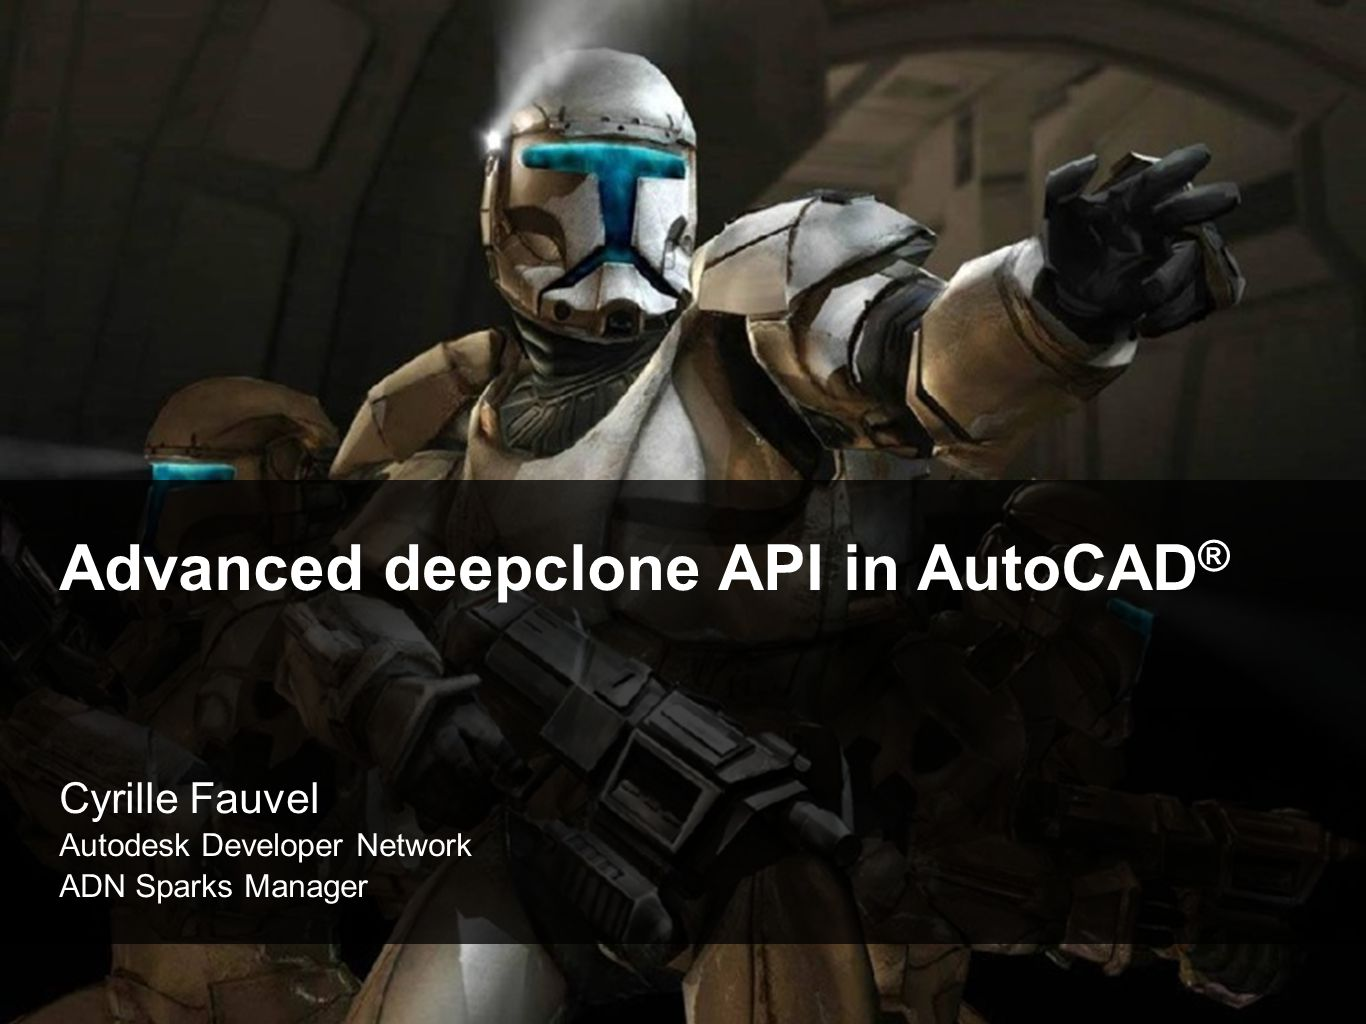 Class Objective  You learn  AutoCAD deepClone API and cloning techniques  Benchmarks, performance and implementation considerations  Aspects of controlling cloning operations in AutoCAD  We do not discuss and assume knowledge of  How to program in.NET or ObjectARX  The basics of the AutoCAD.Net or ObjectARX API  AutoCAD product usage